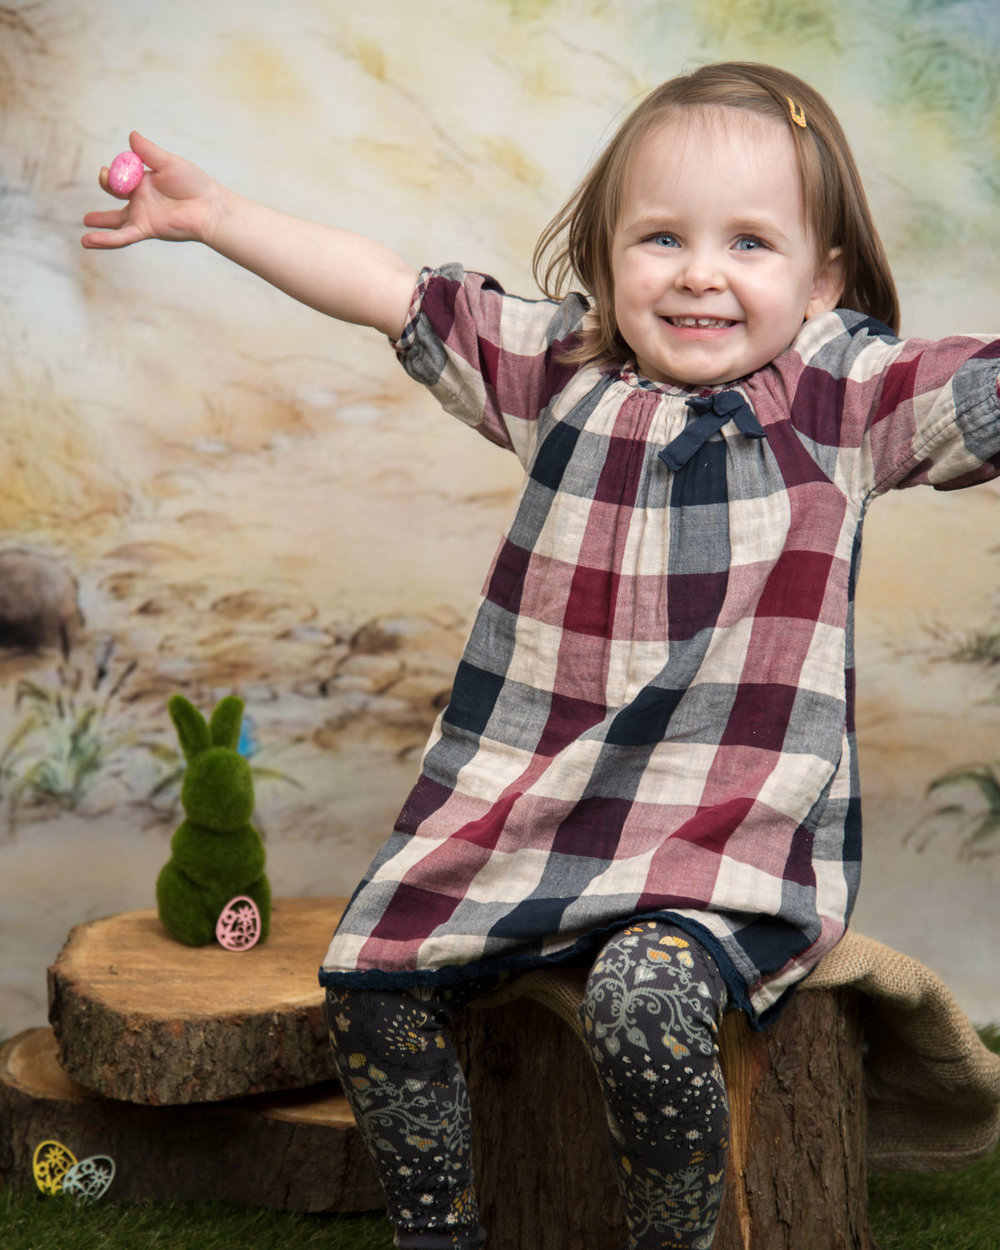 baby_photography_Ely_Cambridgeshire_easter_mini_session_pooh_themed_backdrop_girl_holding_arms_out.jpg